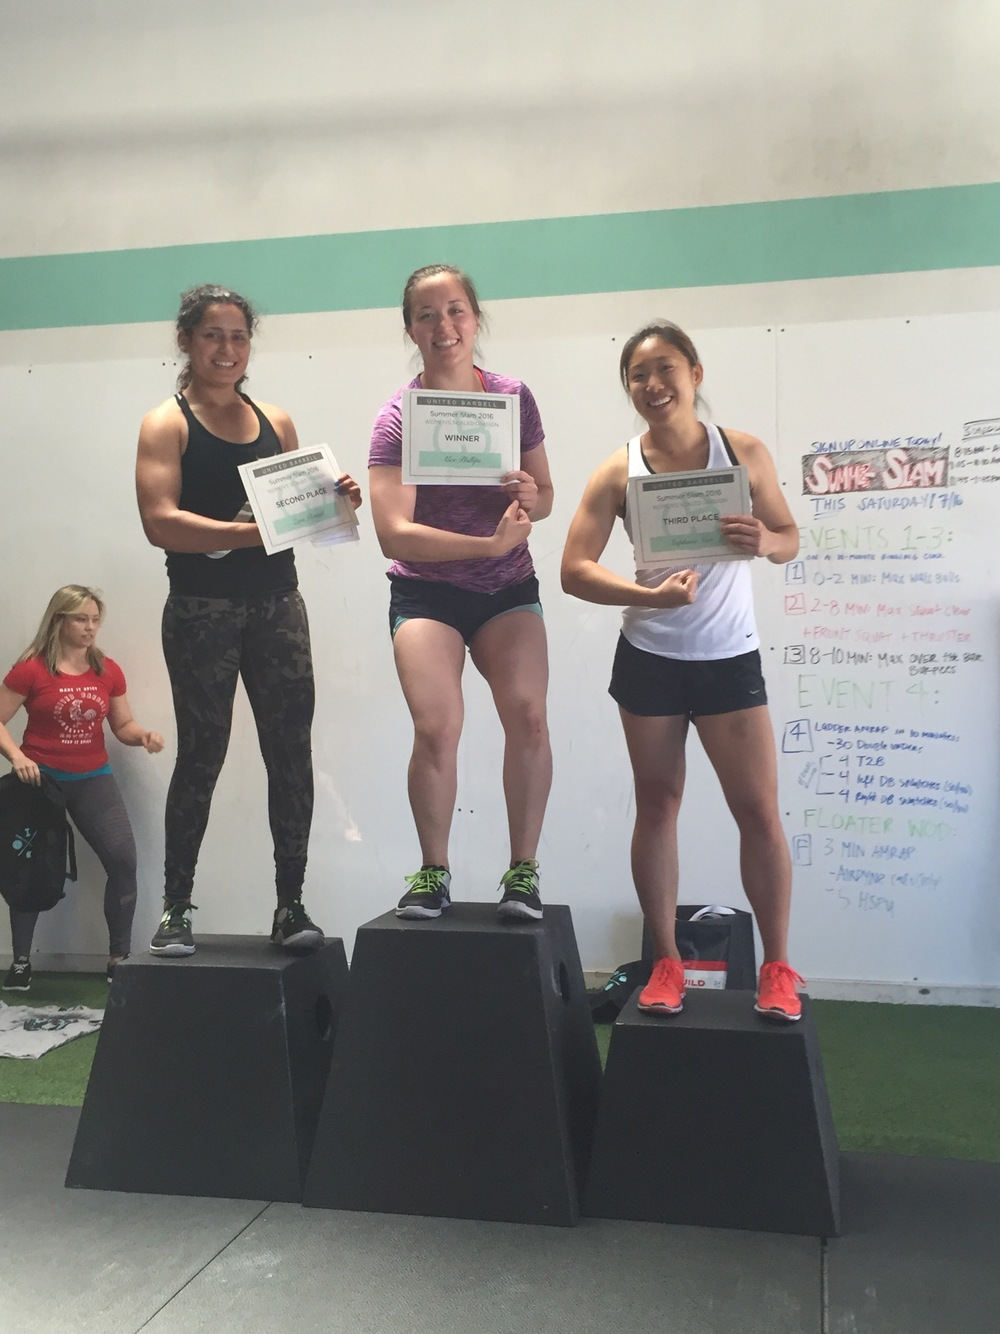 Scaled Ladies: 1st - Alex P., 2nd - Zara, 3rd - Stephanie